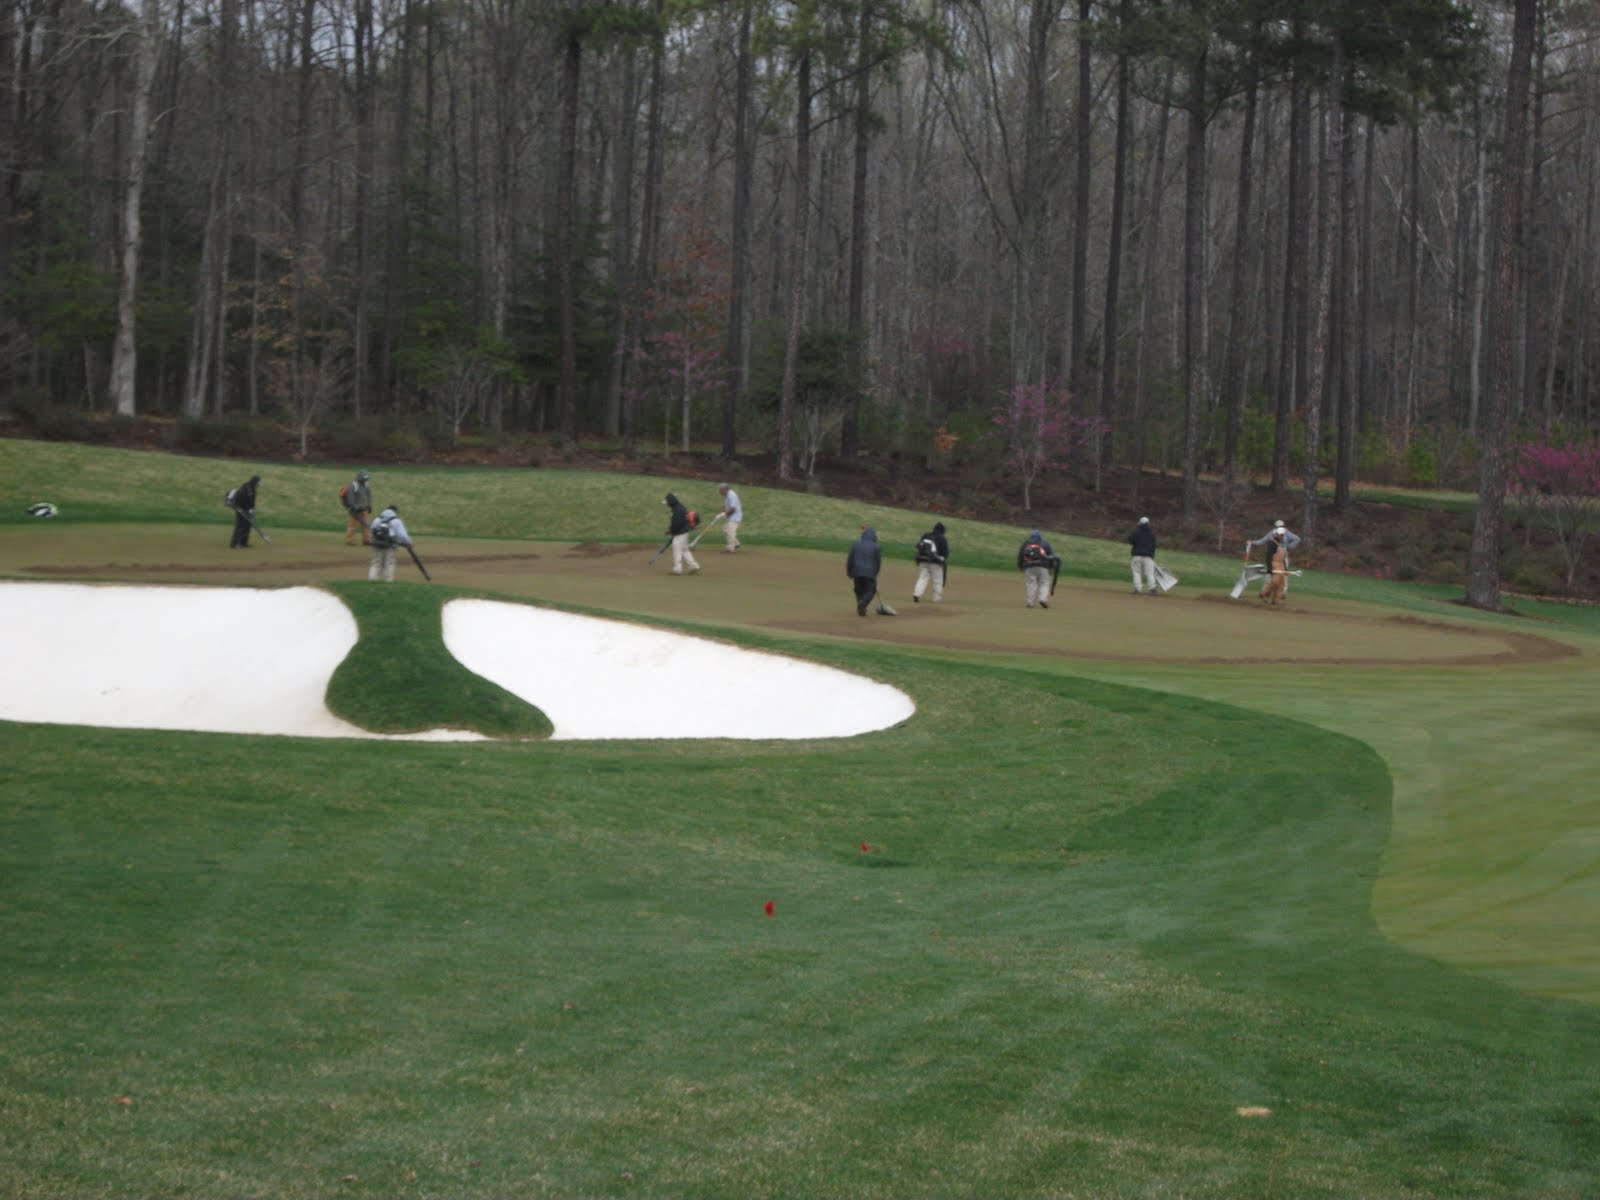 Kinloch Golf Club Golf Course Operations: Another Spring